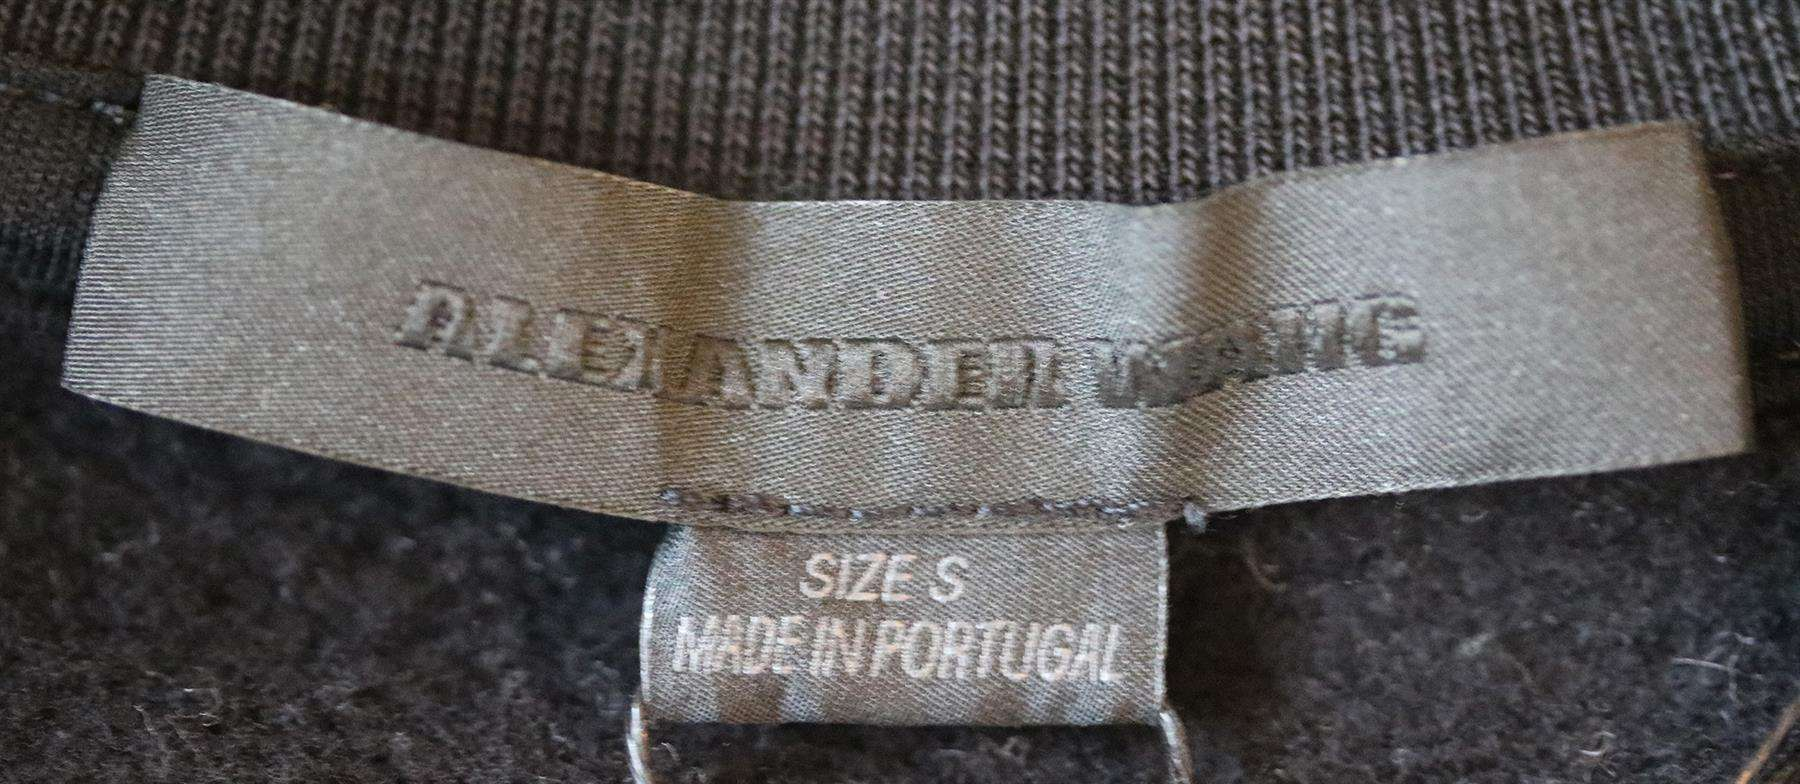 ALEXANDER WANG LOGO BARCODE COTTON SWEATSHIRT SMALL